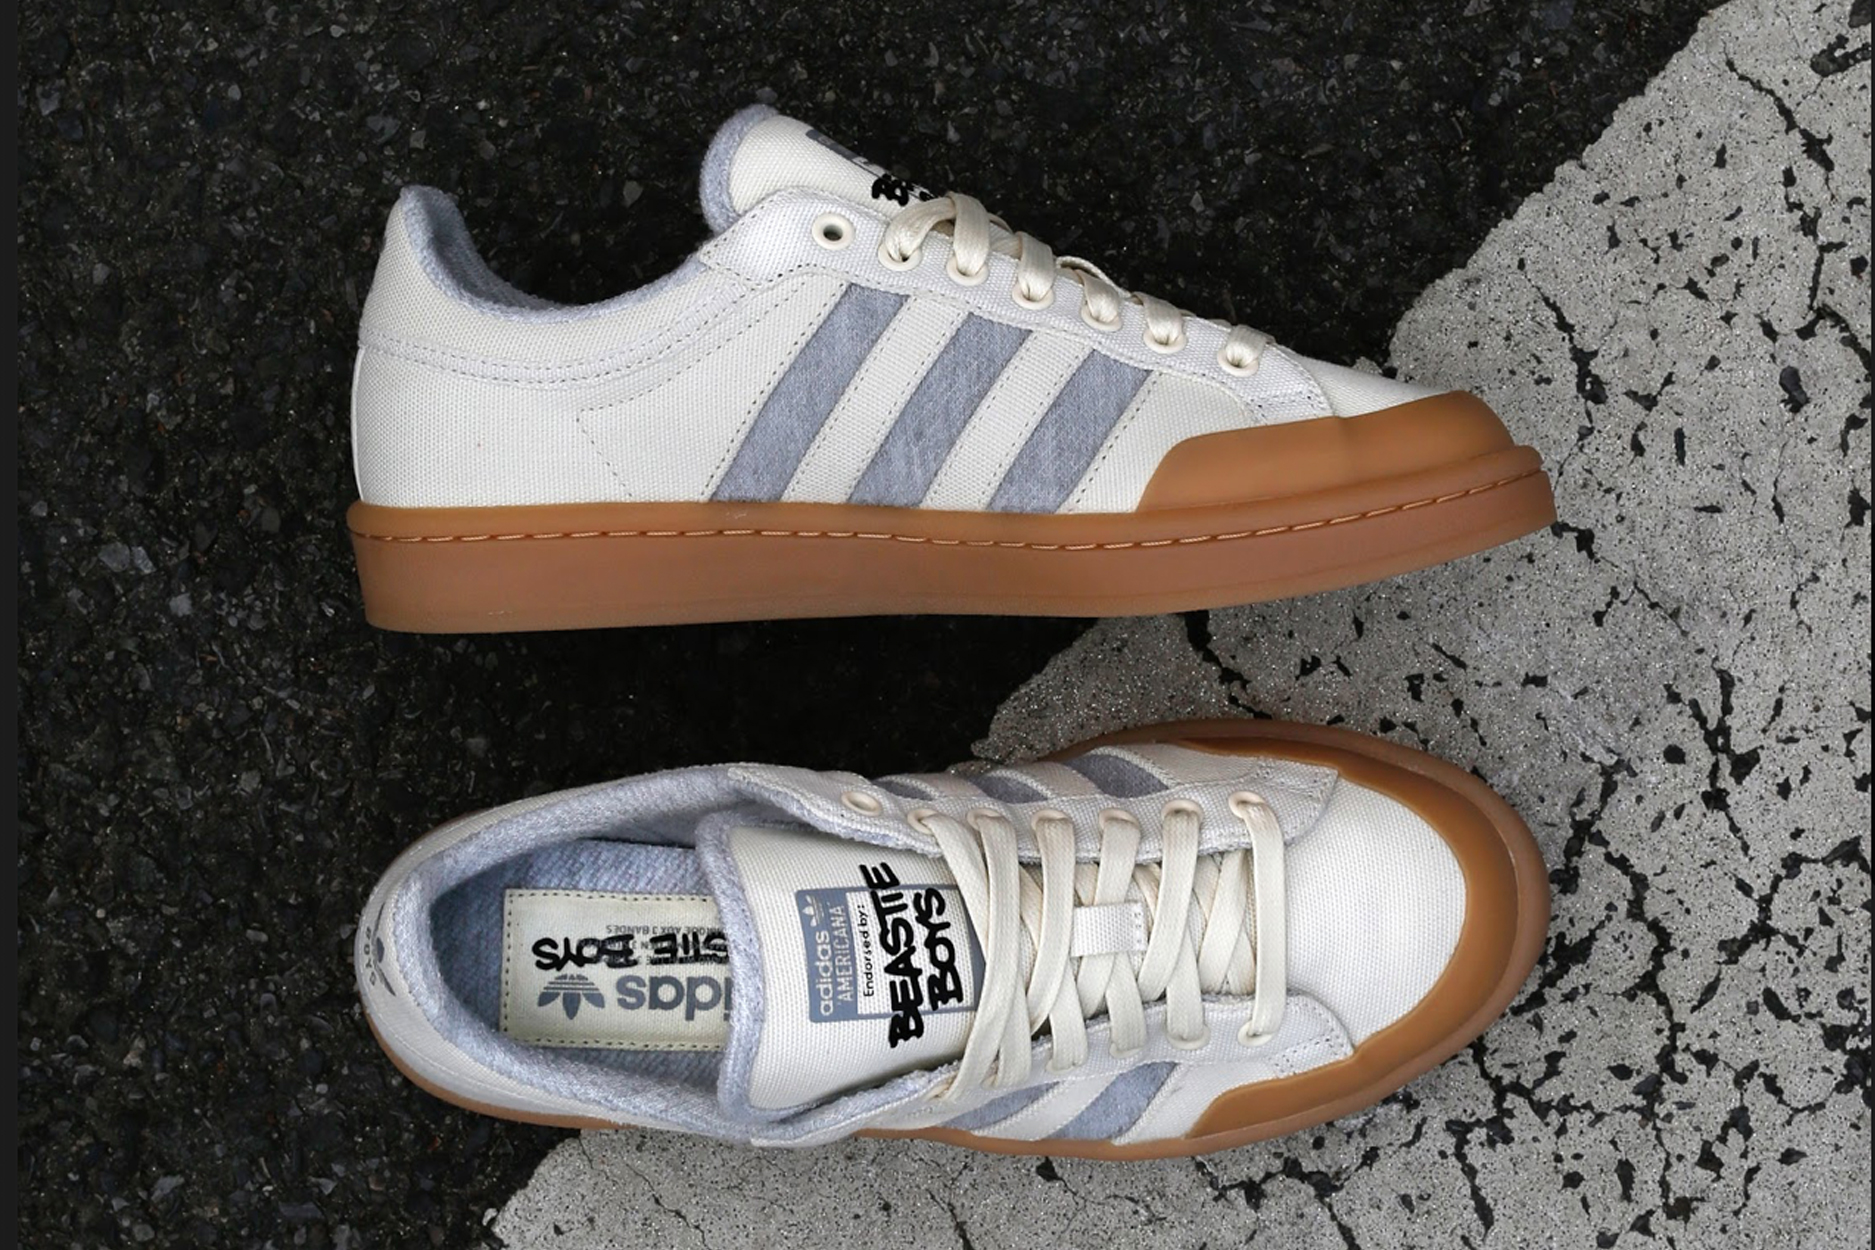 Adidas Skateboarding Commemorates the Beastie Boys with a